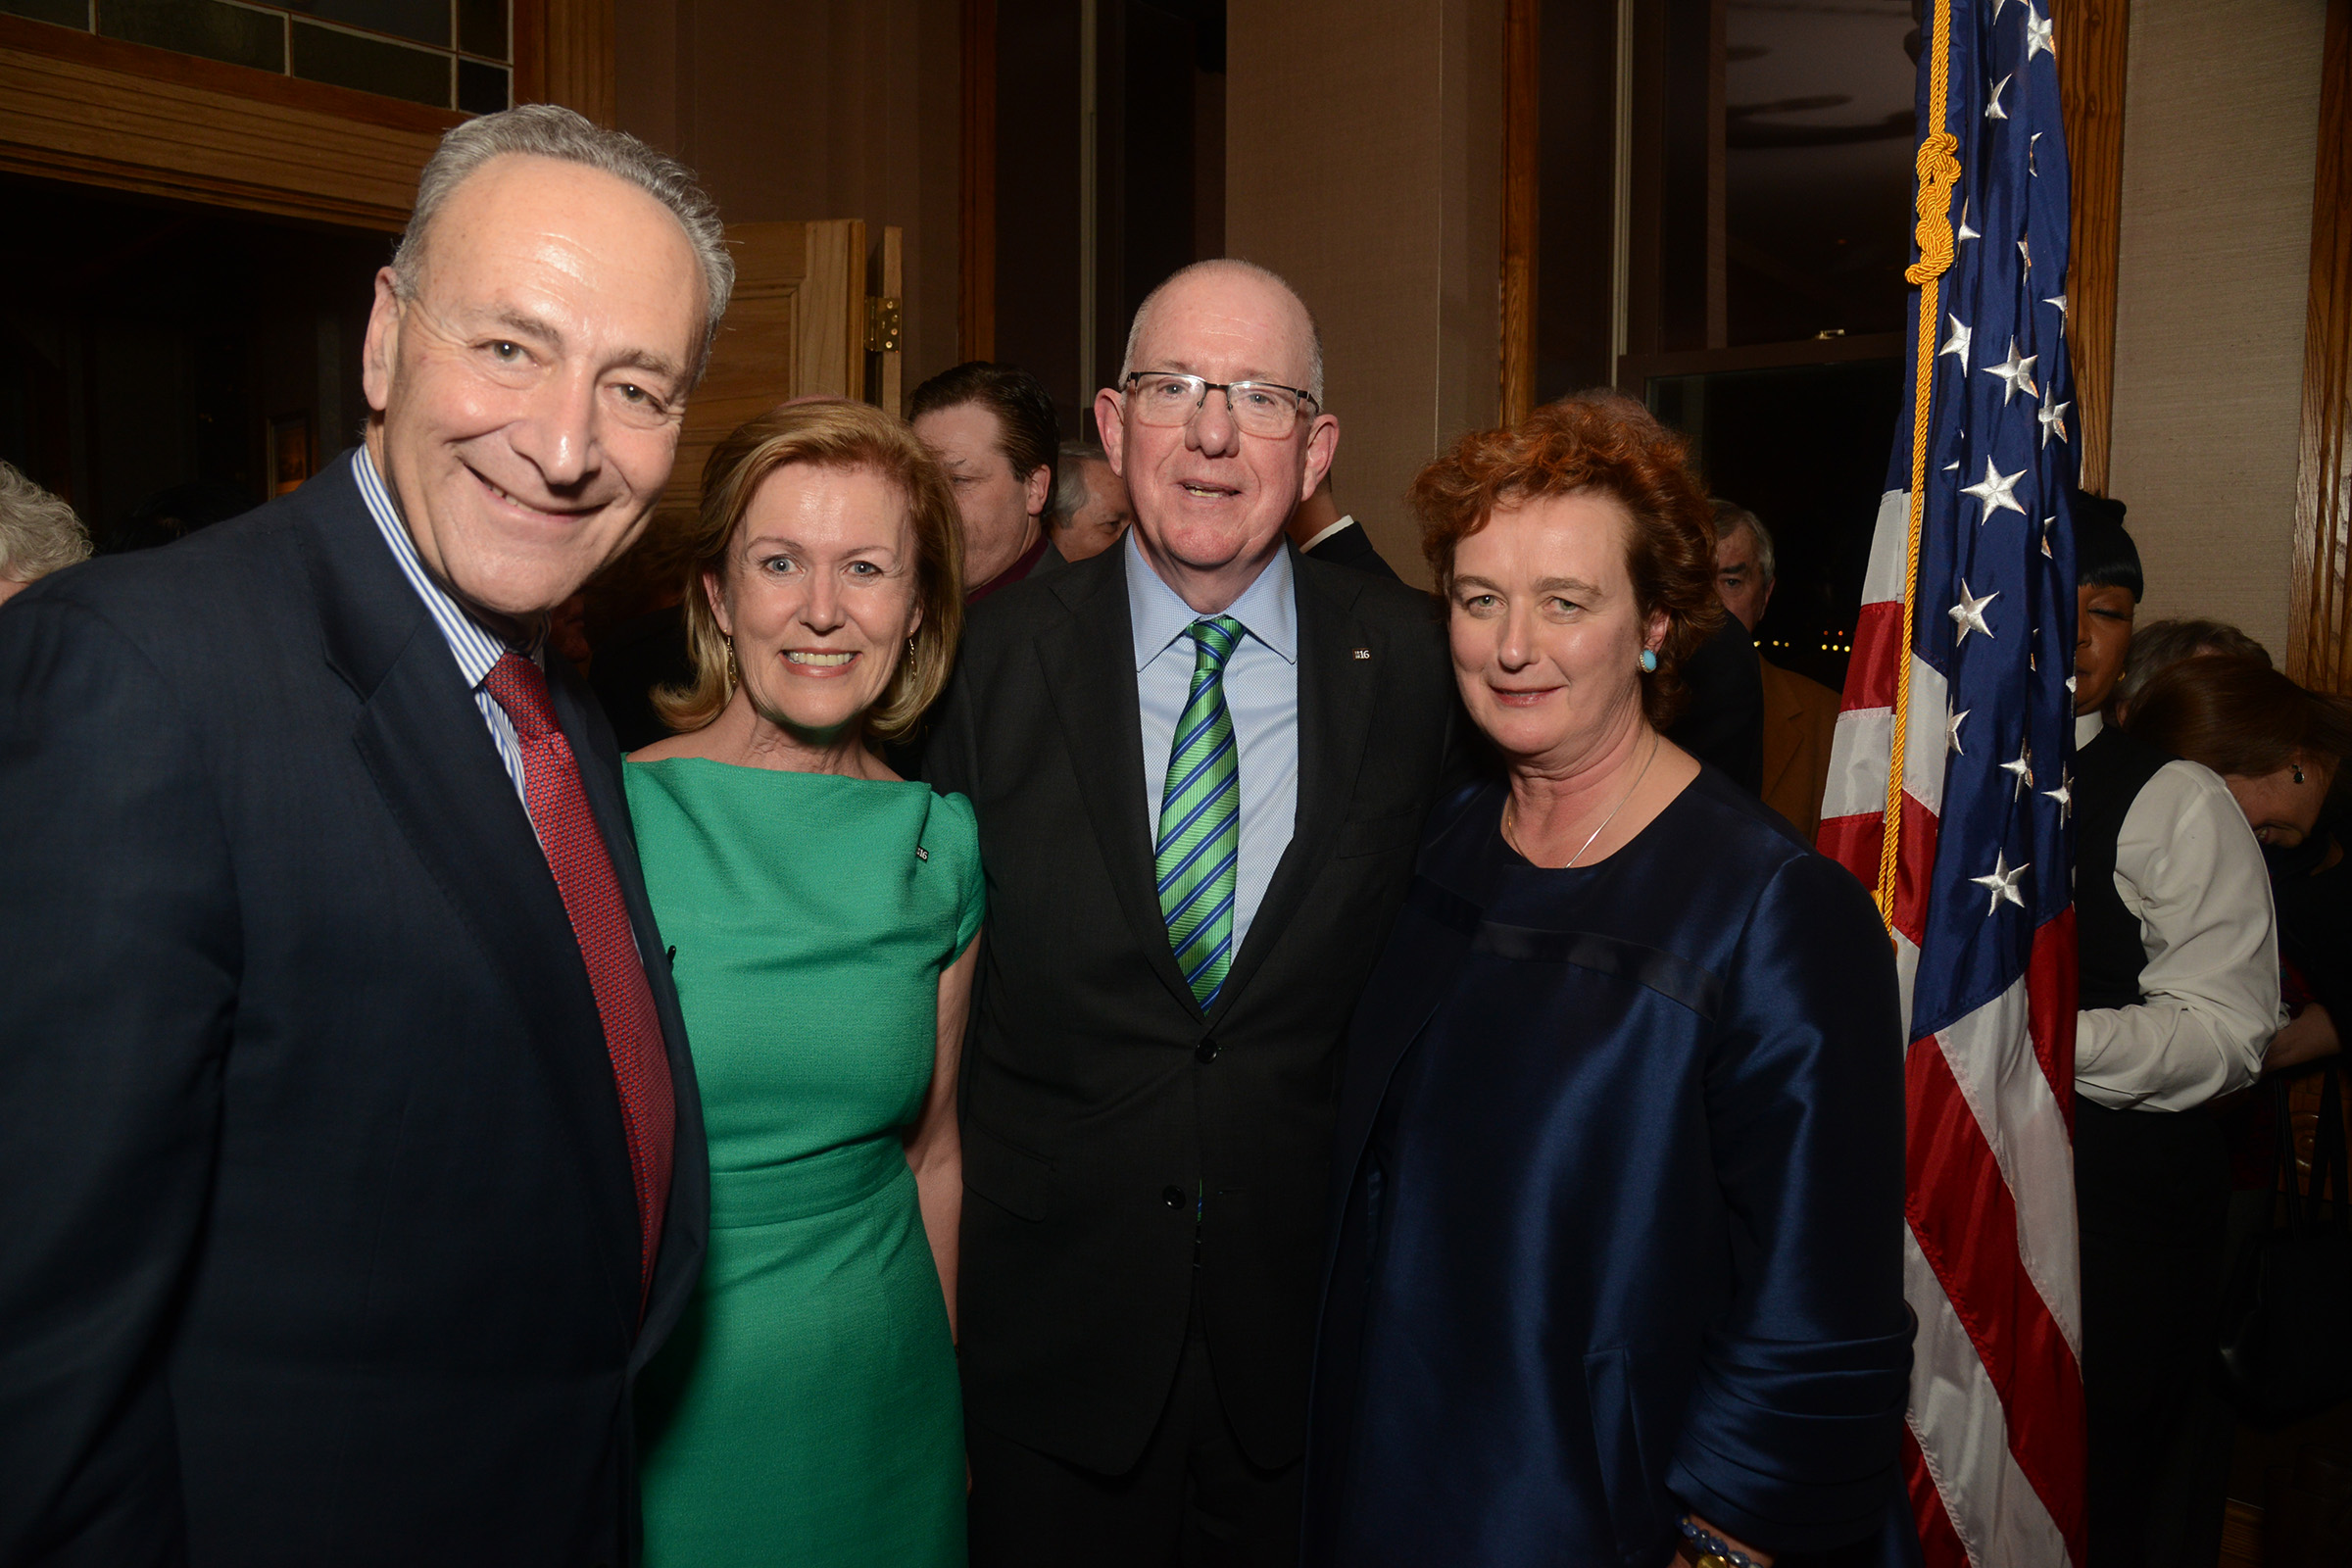 Left to Right: New York Senator Chuck Schumer with Ambassador Anne Anderson, Minister Charlie Flanagan and Consul General Barbara Jones at Pier A, Jan 7, 2016. (Photo: James Higgins)